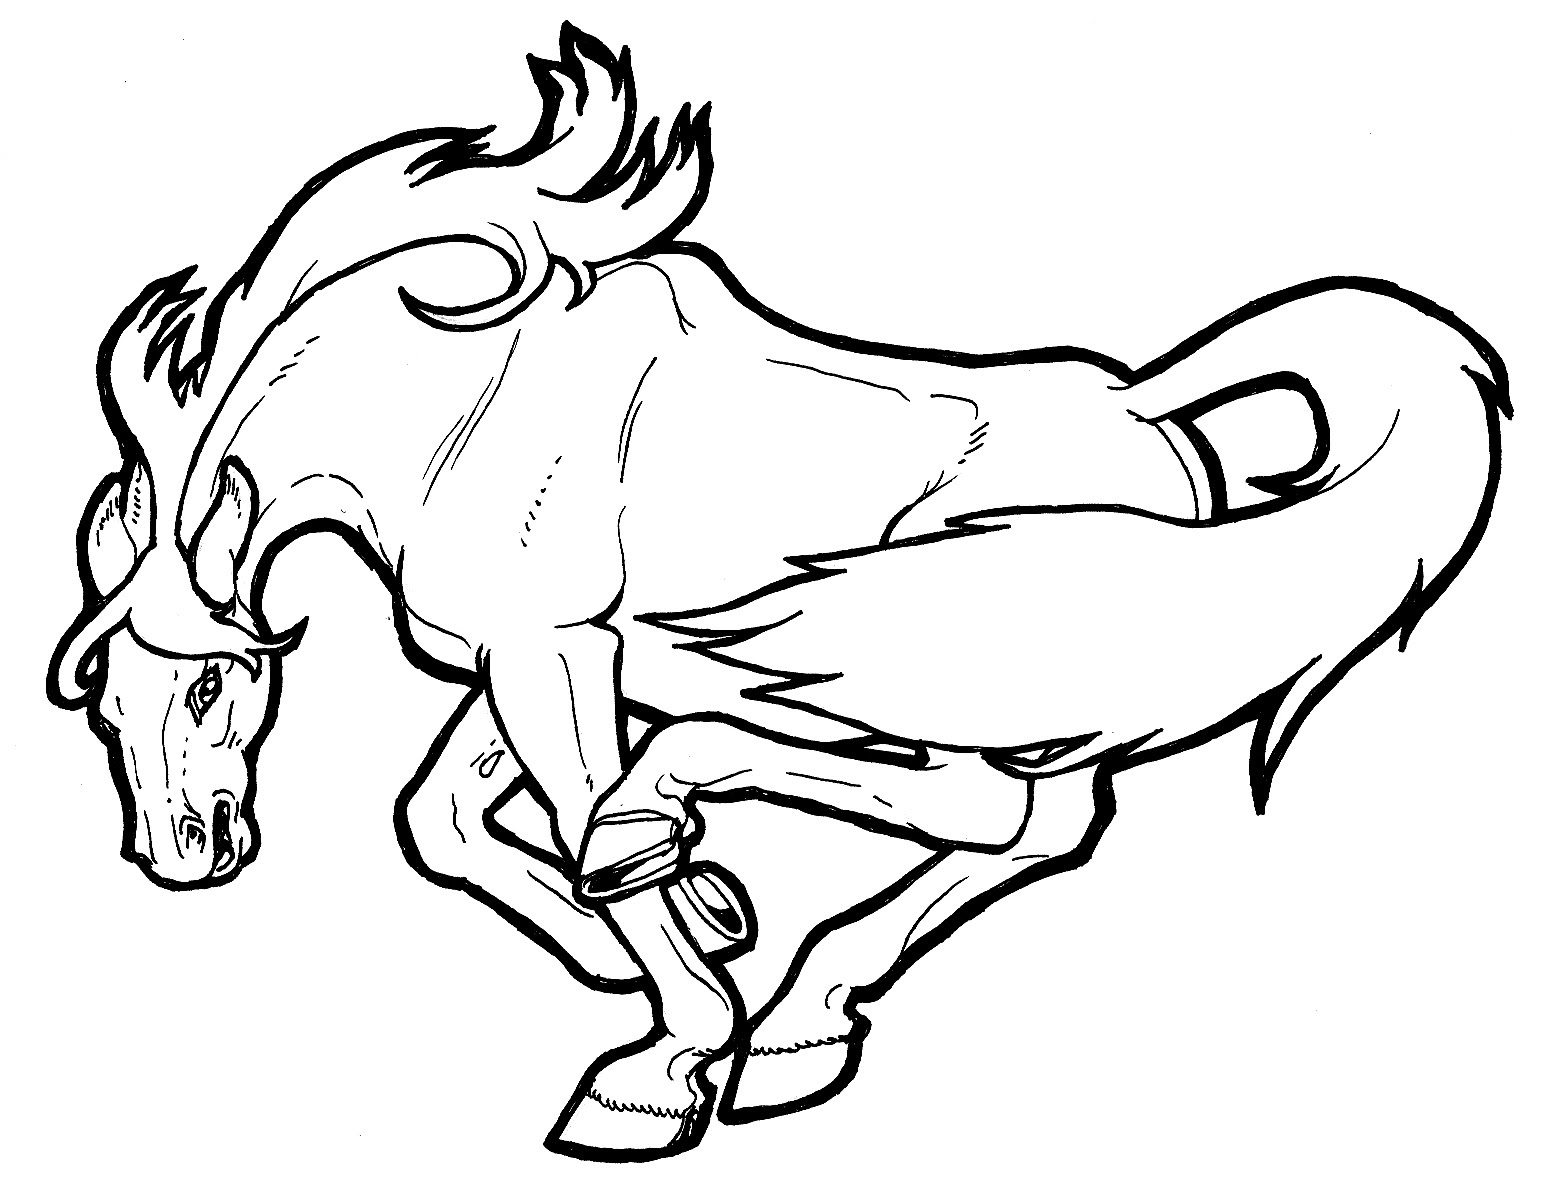 Bucking Horse Coloring Pages at GetColorings.com | Free ...